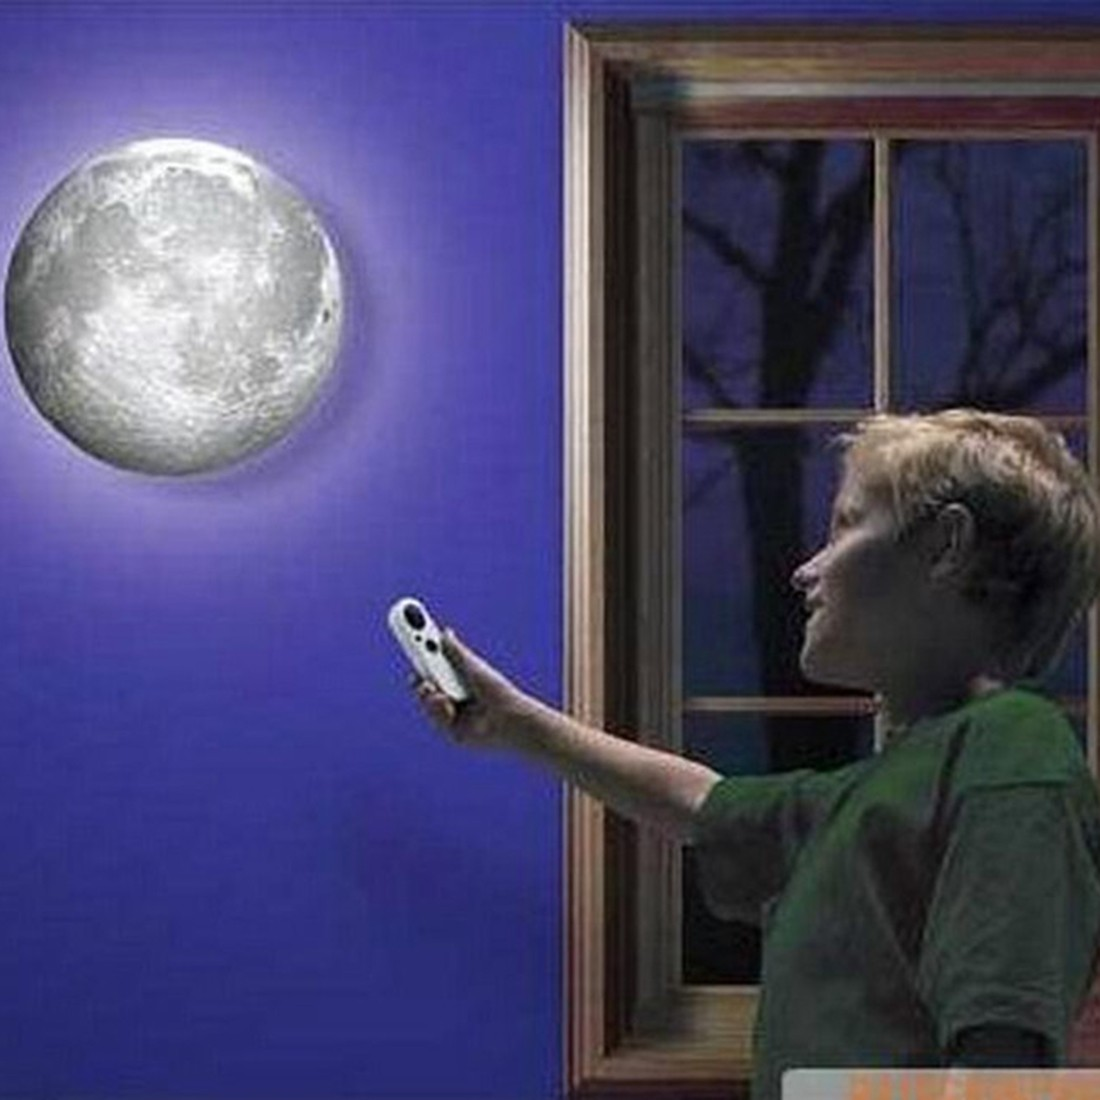 indoor abs 6 kinds phase of the moon led wall moon lamp with remote control relaxing healing moon christmas night light for kids Amazing Remote Control LED Healing Moon Wall Ceiling Night Lamp Kids Gifts Romantic Wall Hanging Lamp